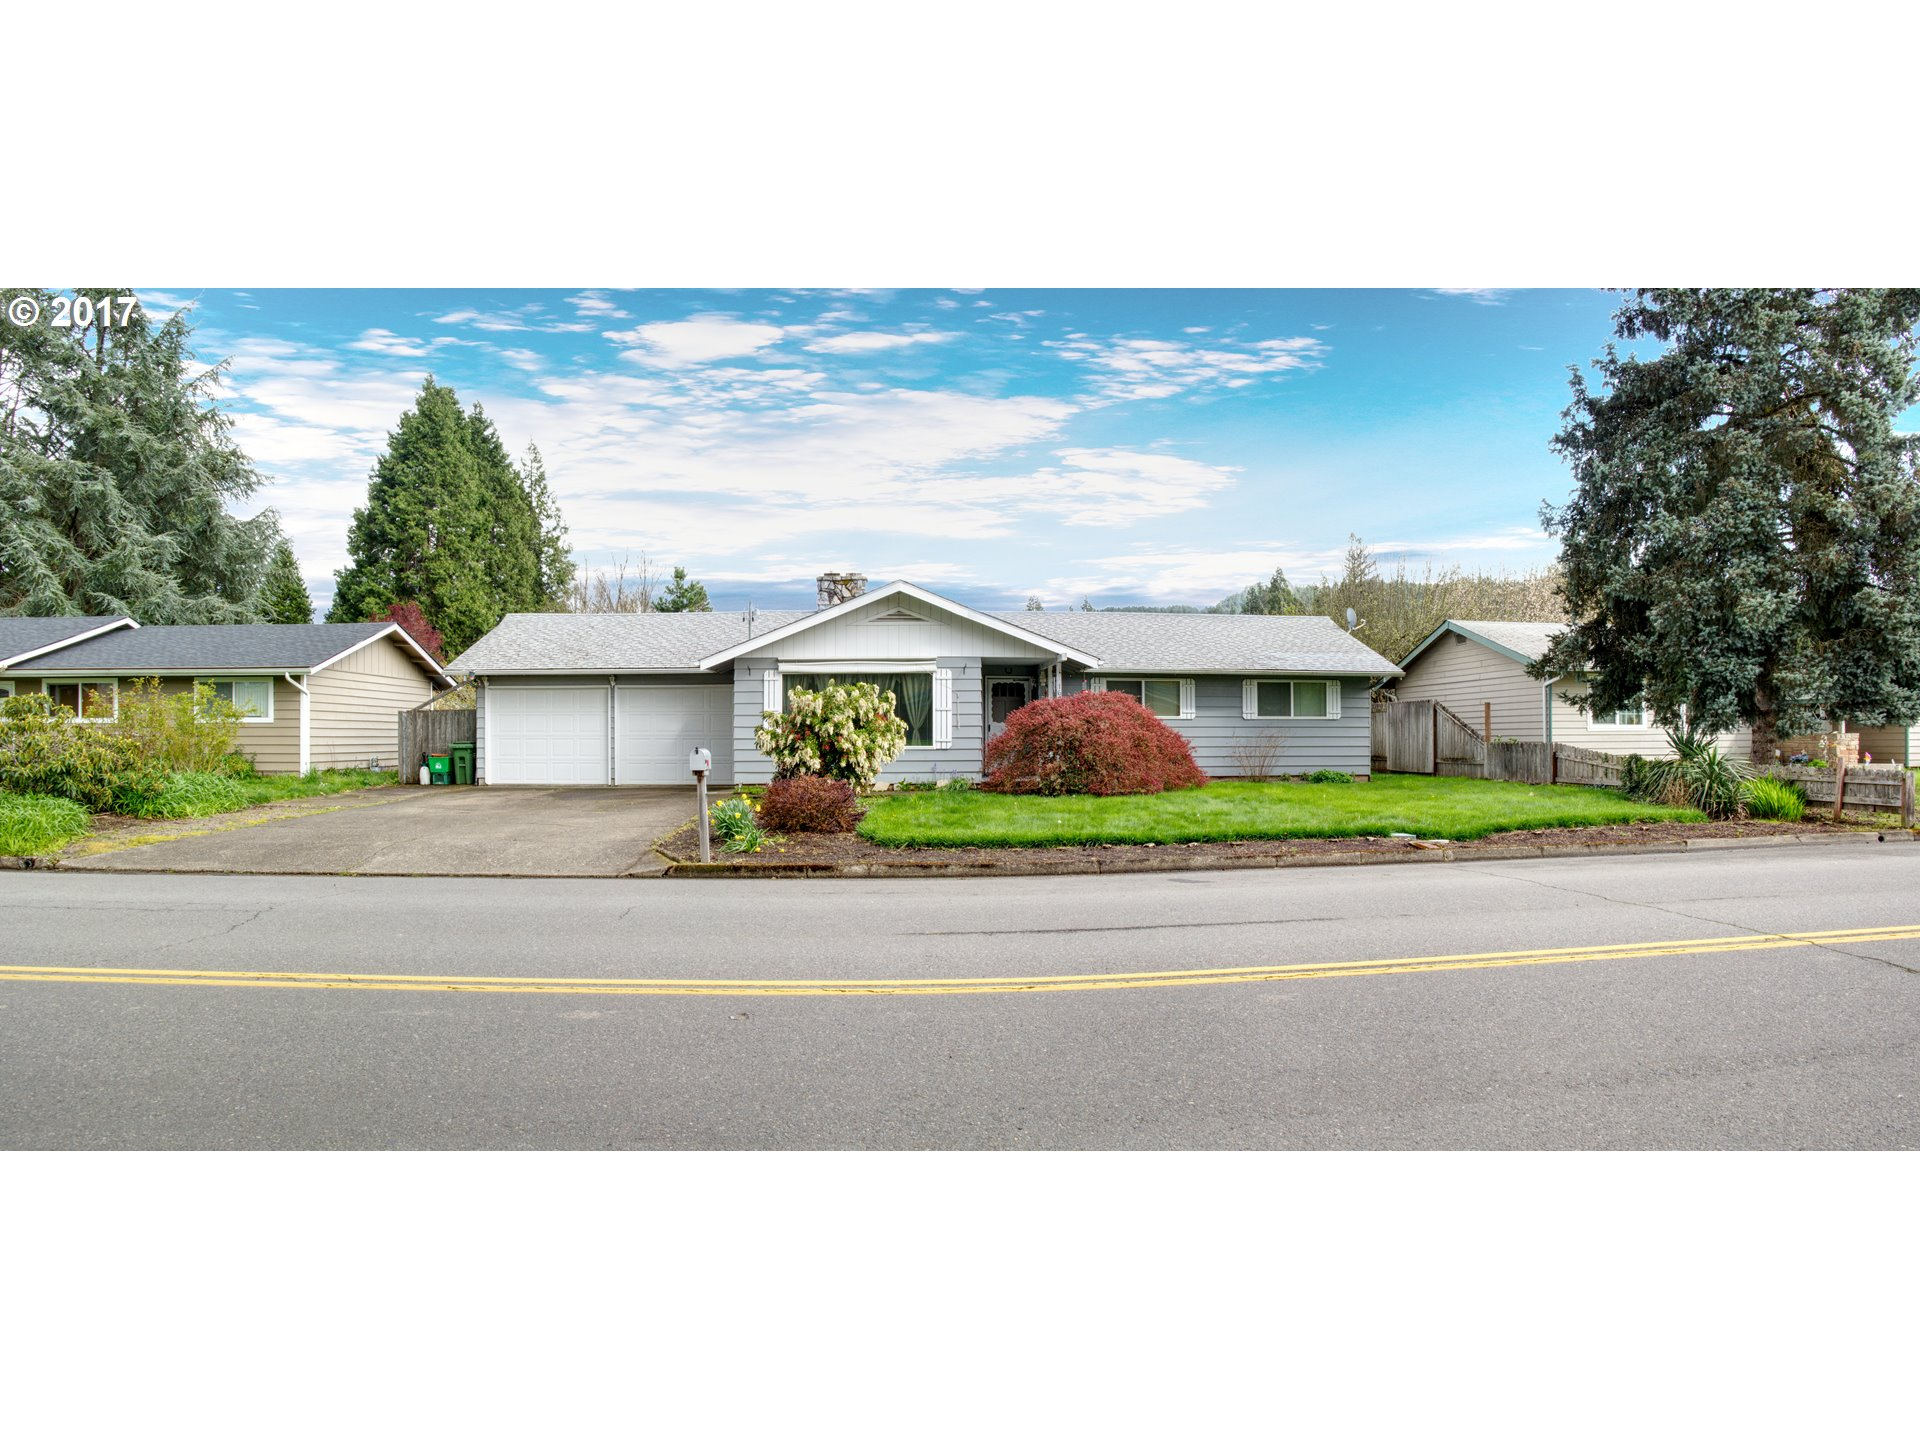 1630 S 4TH ST, Cottage Grove, OR 97424